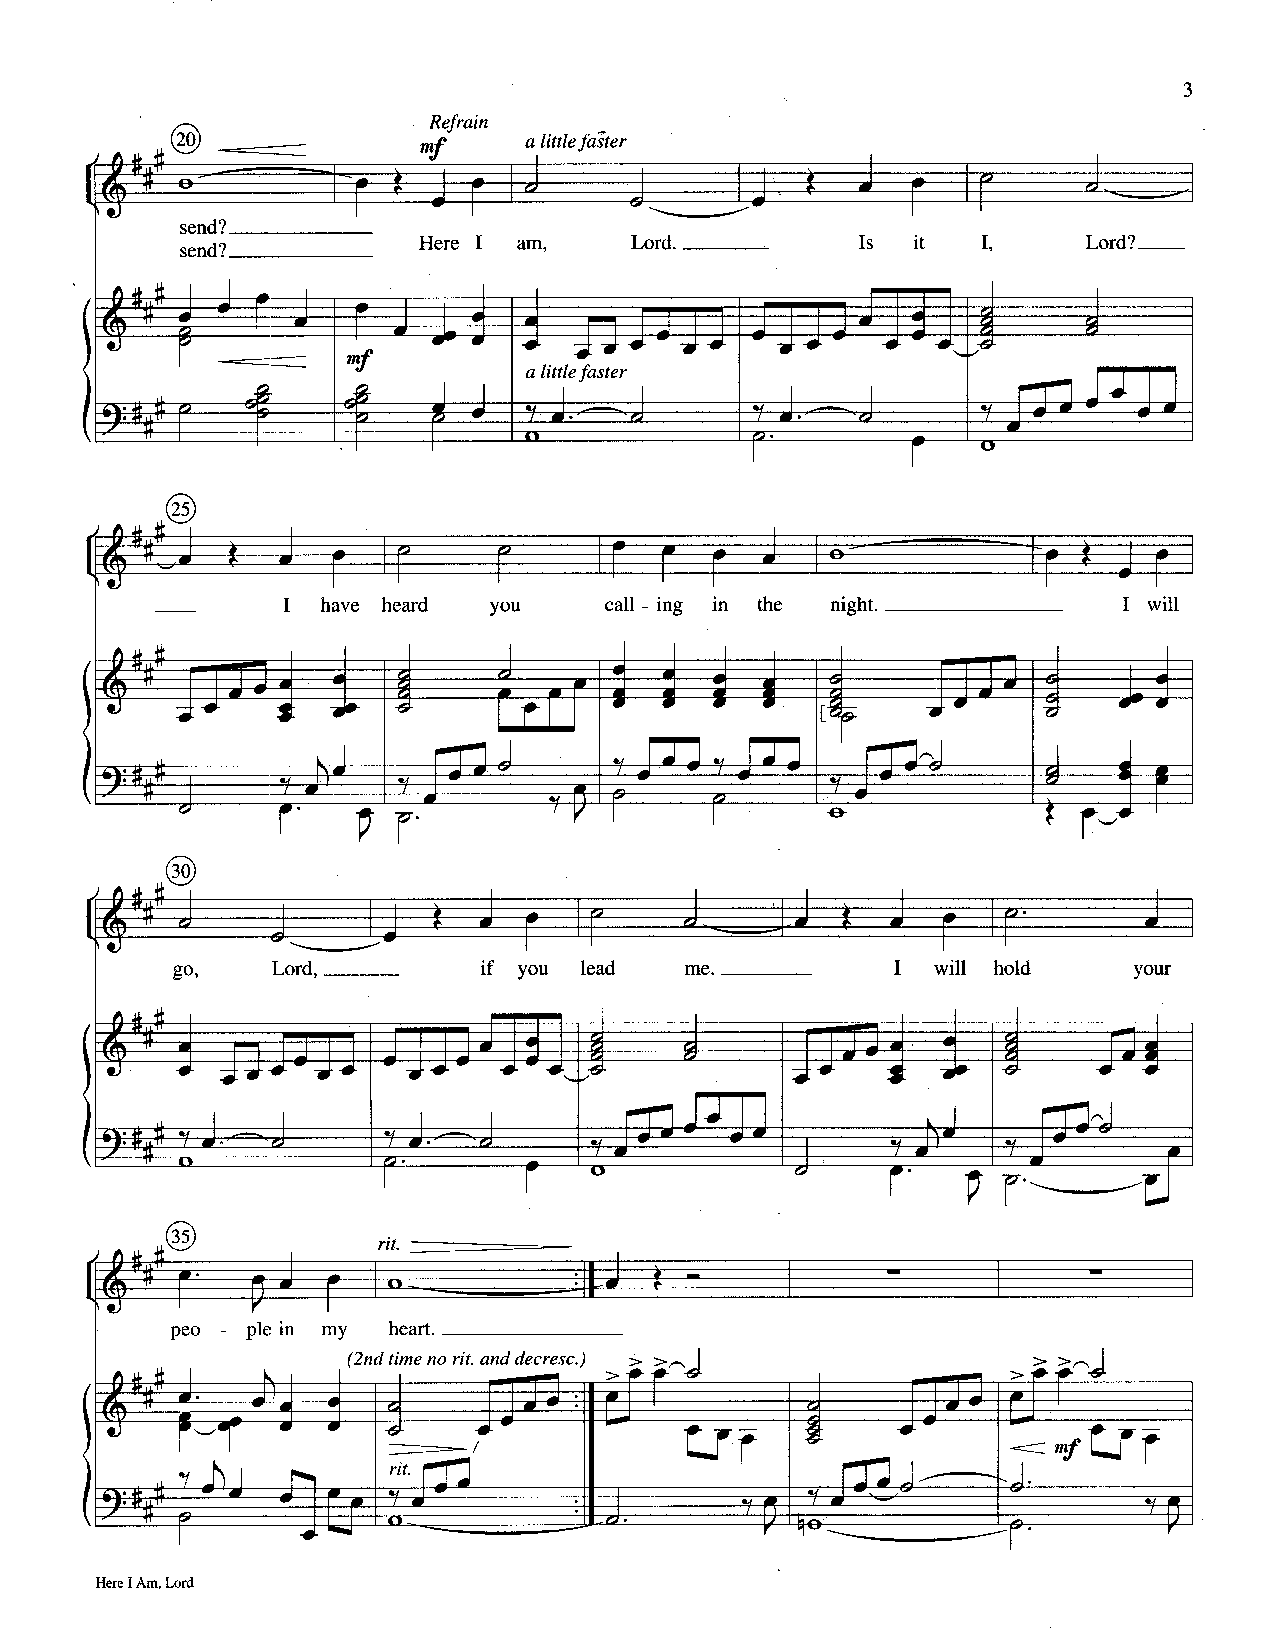 Here I Am, Lord (Medium High Solo ) by | J W  Pepper Sheet Music